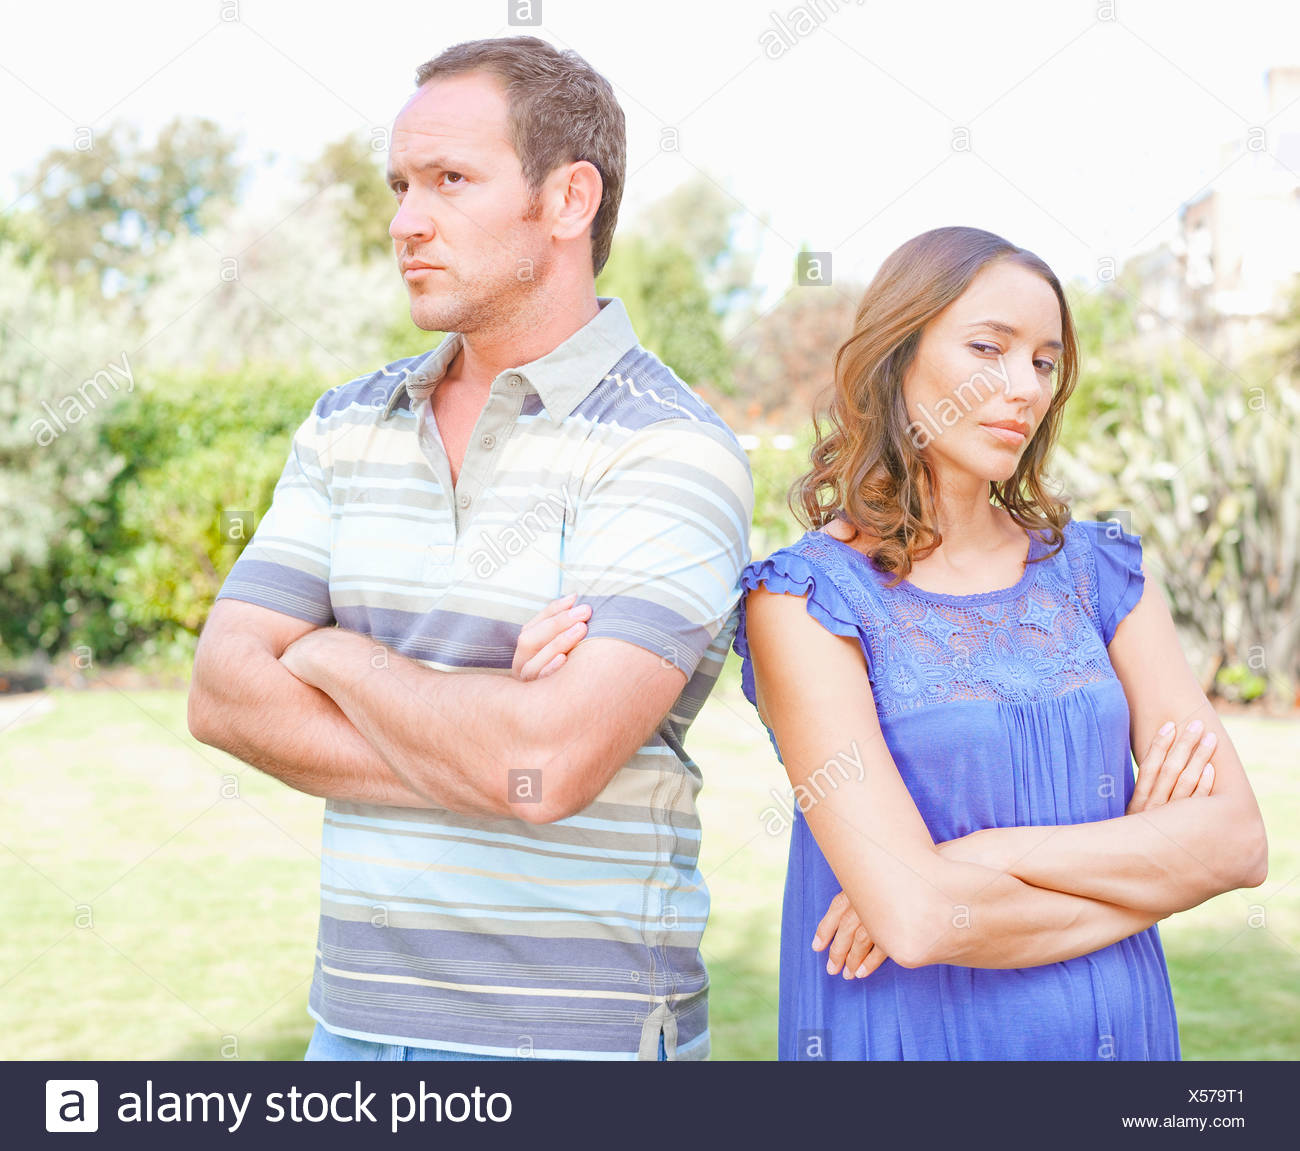 Arguing couple standing outdoors - Stock Image